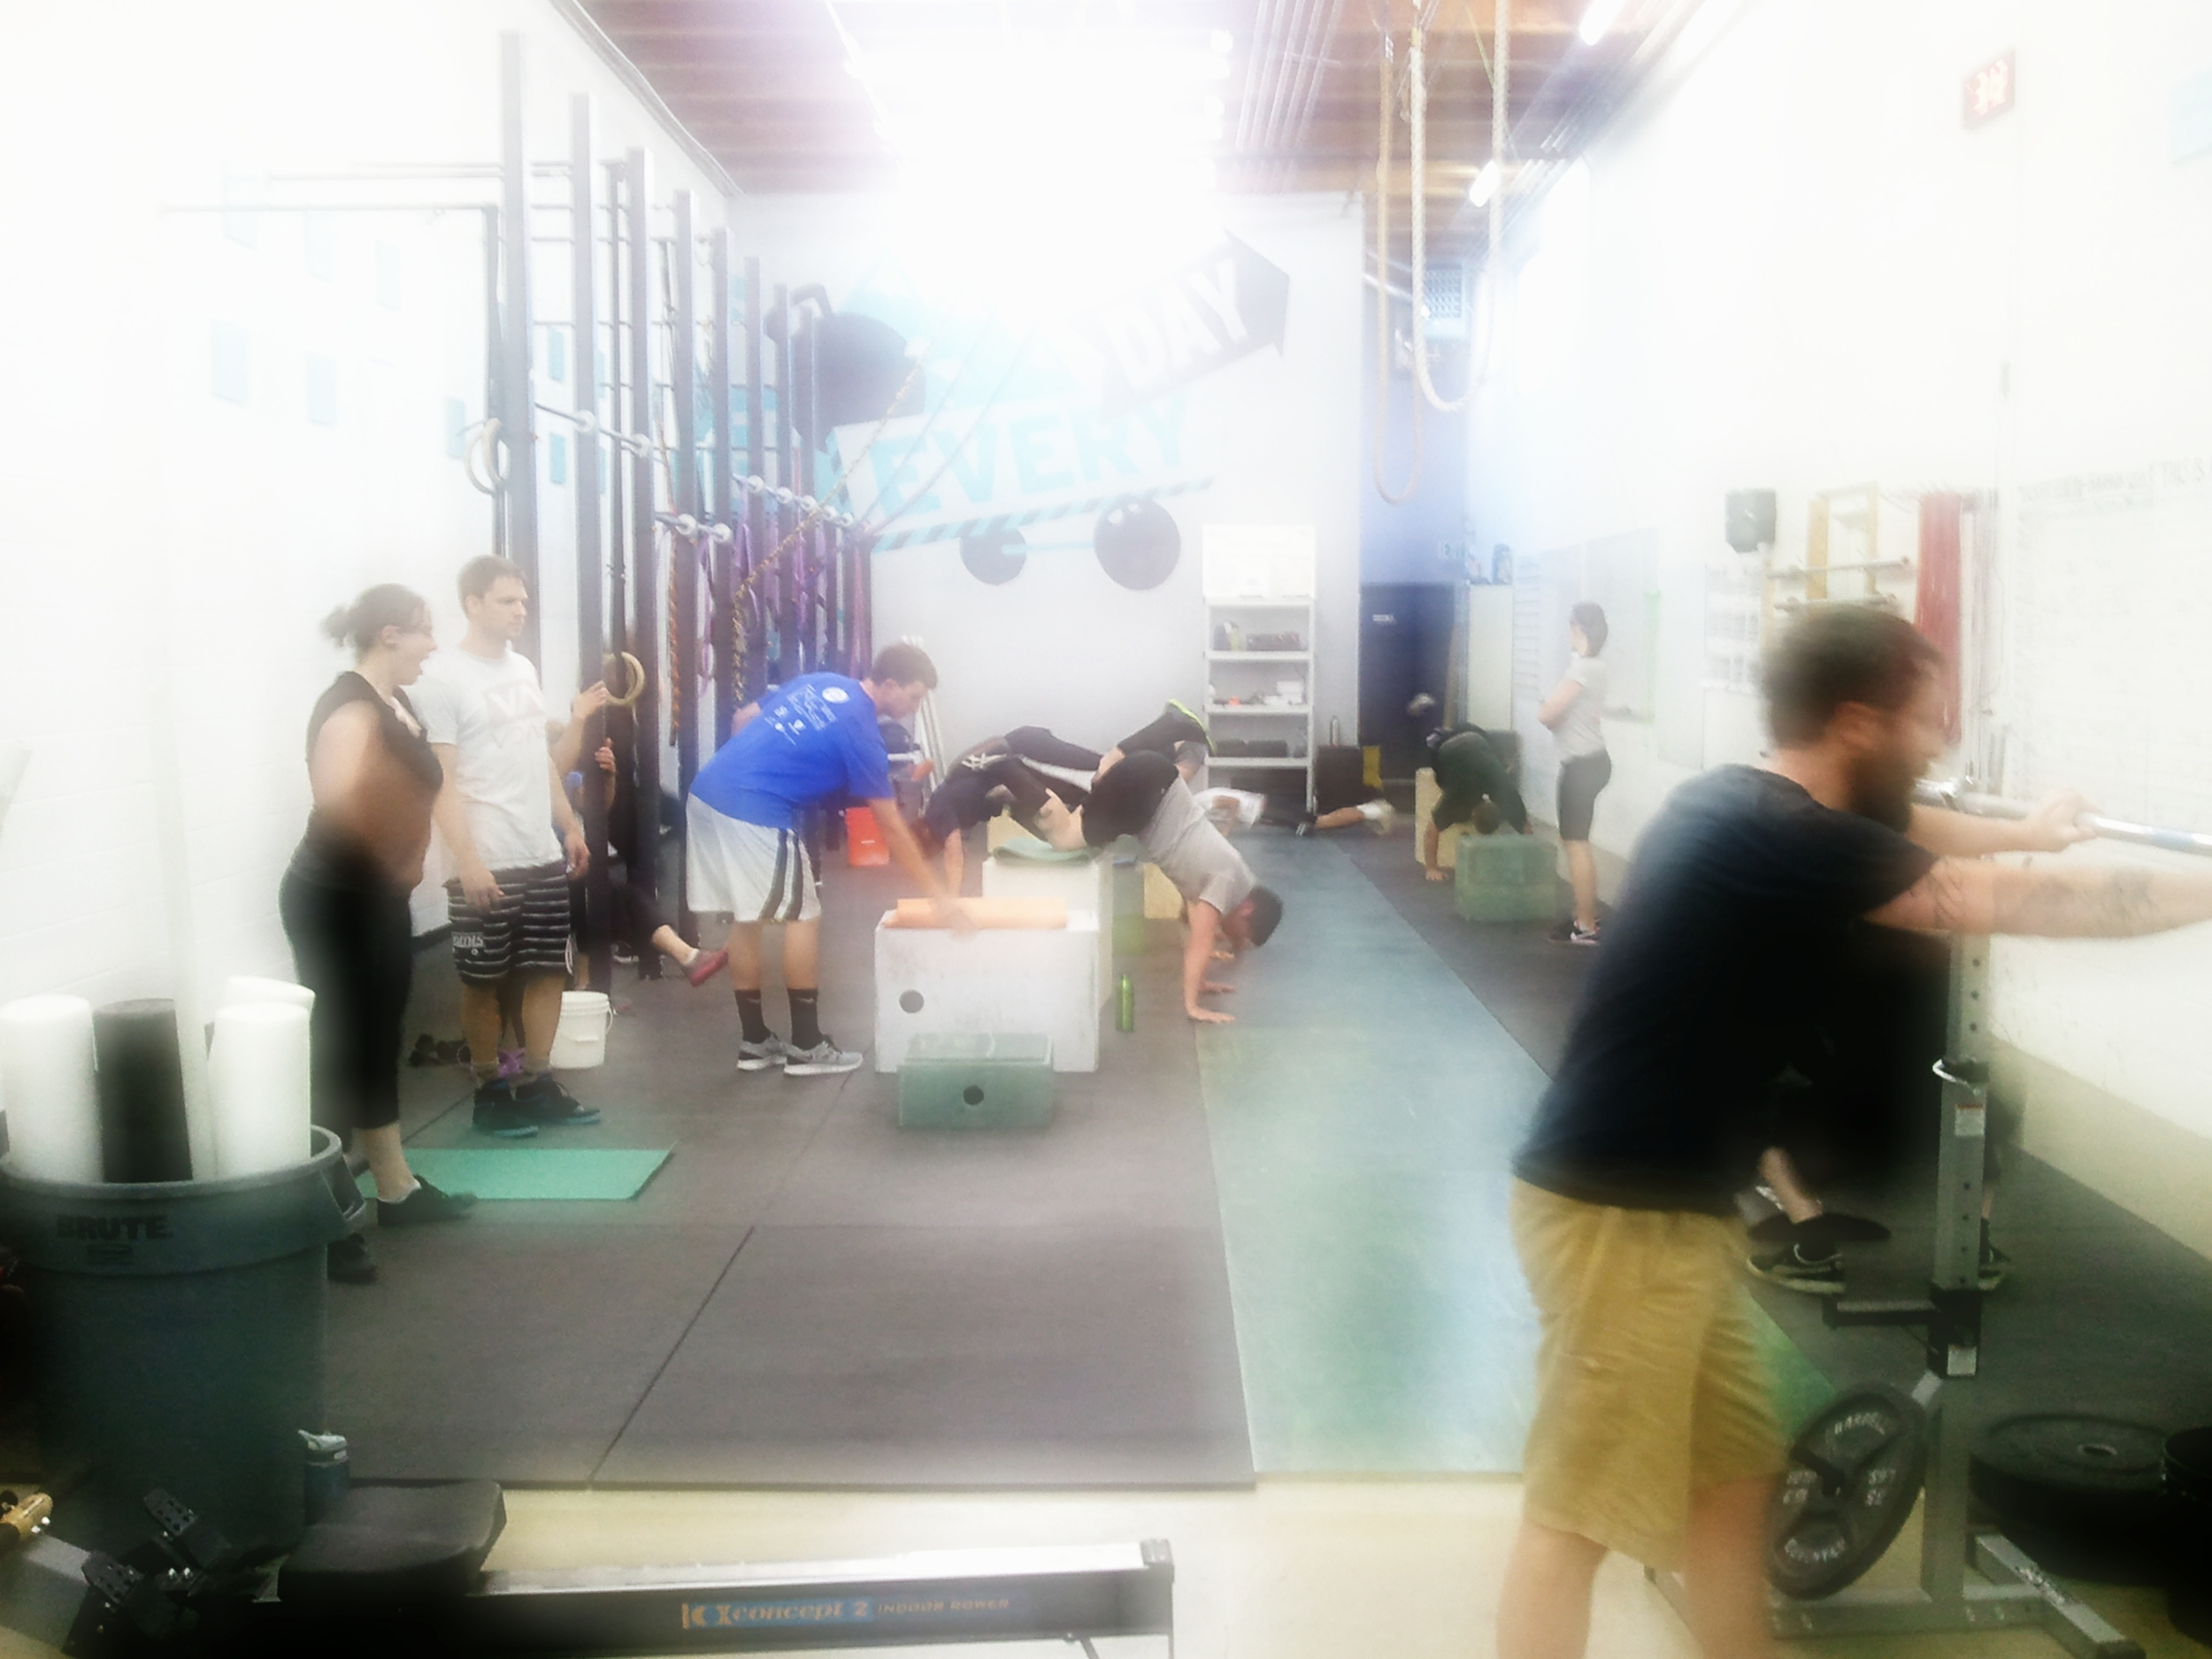 CrossFit Elevation, Denver 303-827-4115